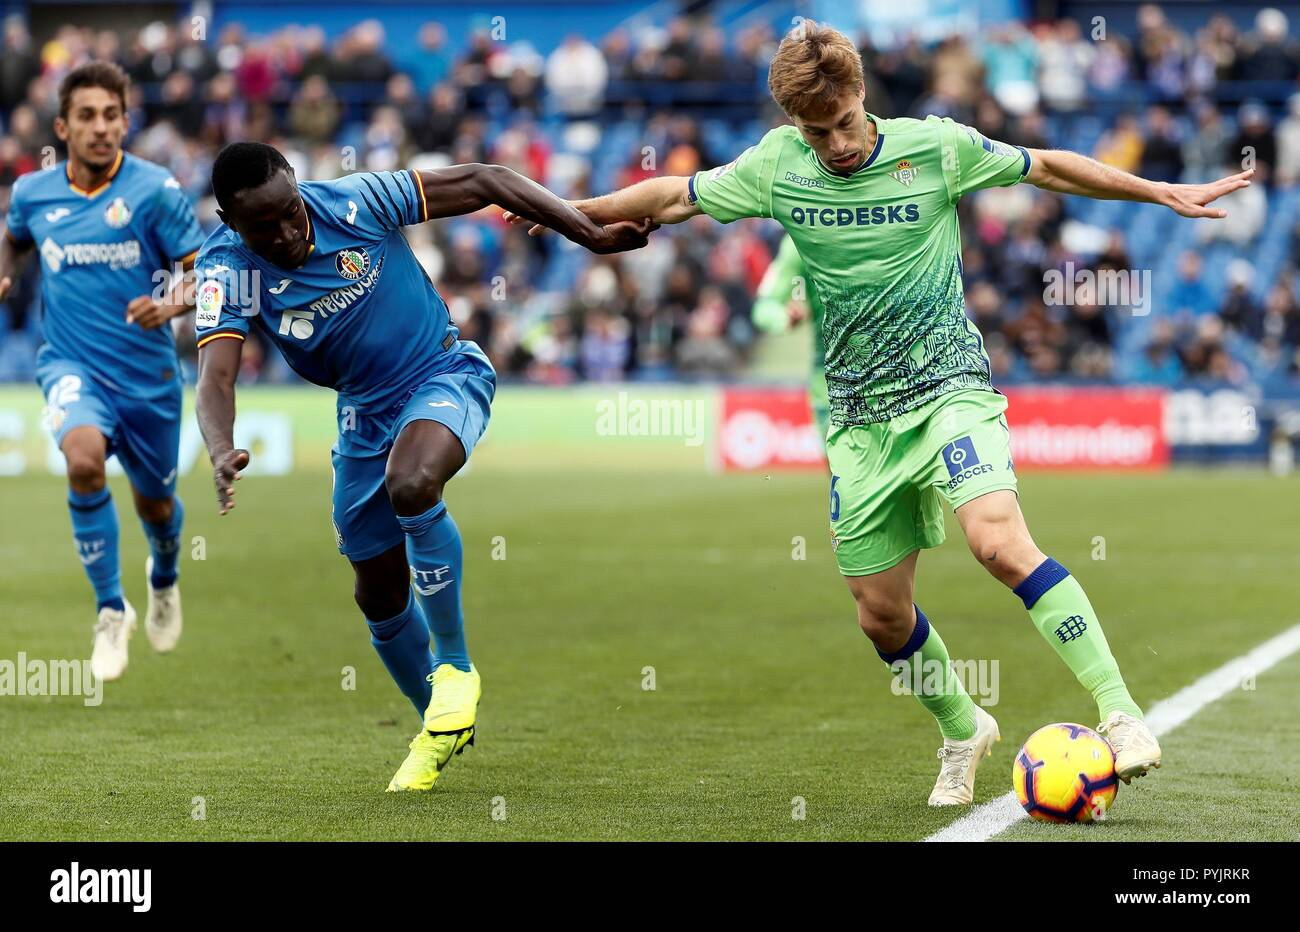 c00e38f03 Getafe CF s Senegalese striker Amath Ndiaye (L) fights for the ball with  Real Betis